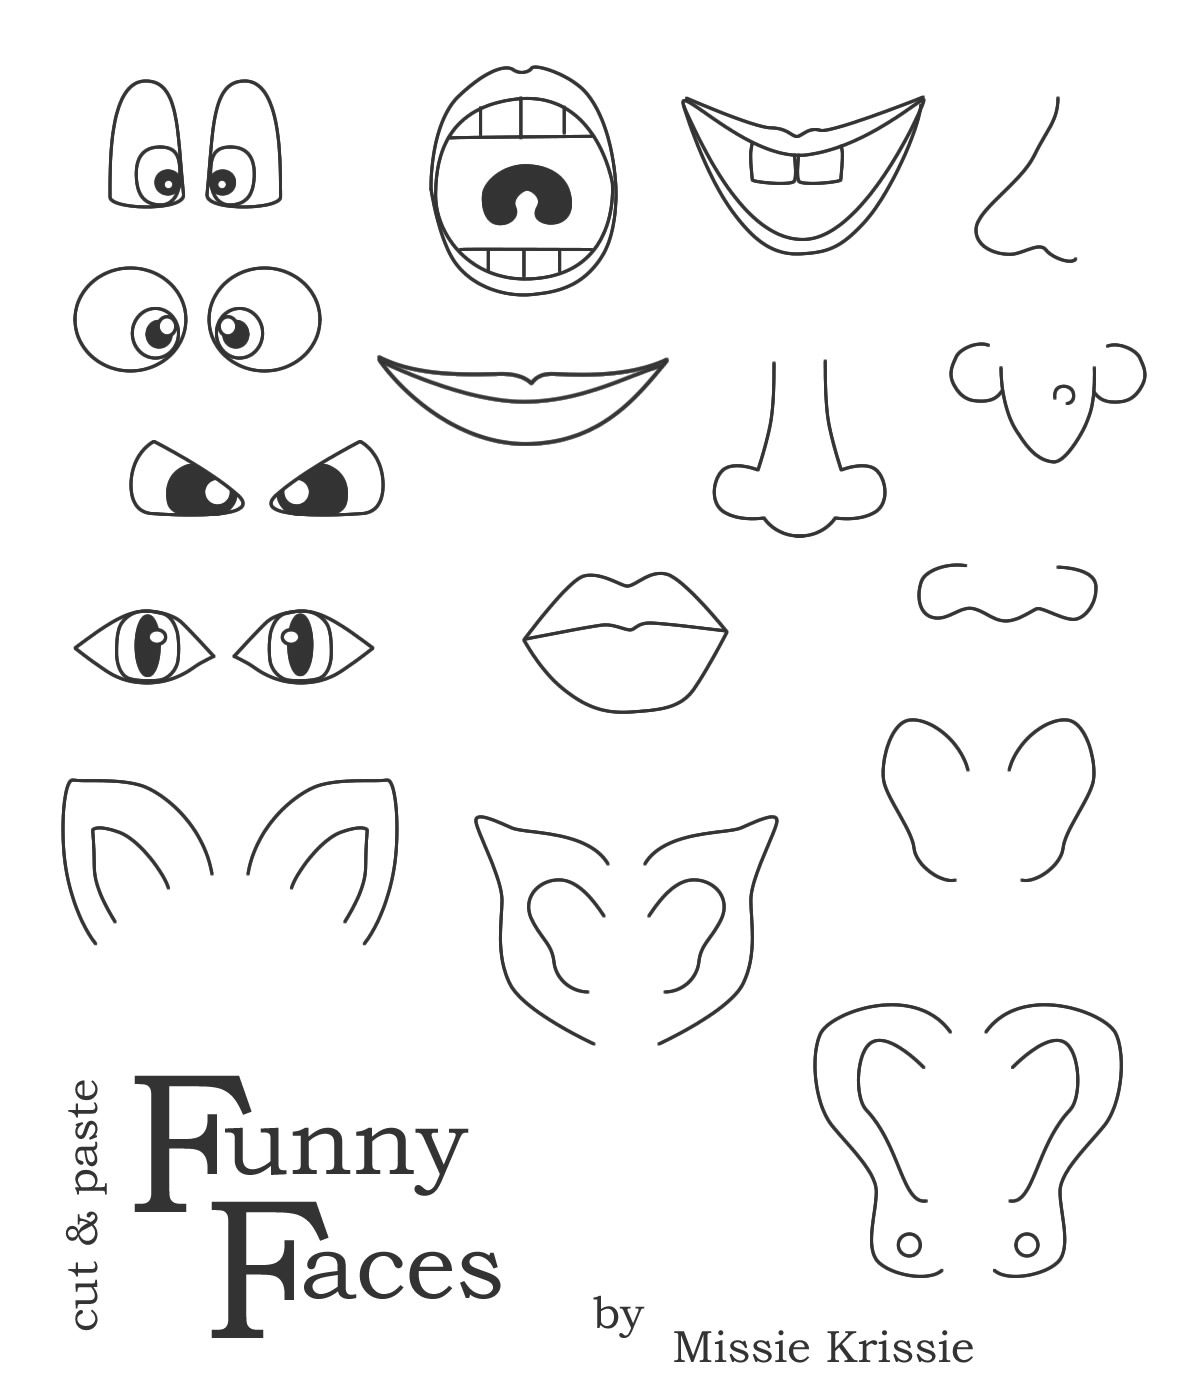 Printable Funny Face Images |  , Wait For It To Load, Right Click - Printable Face Puzzle